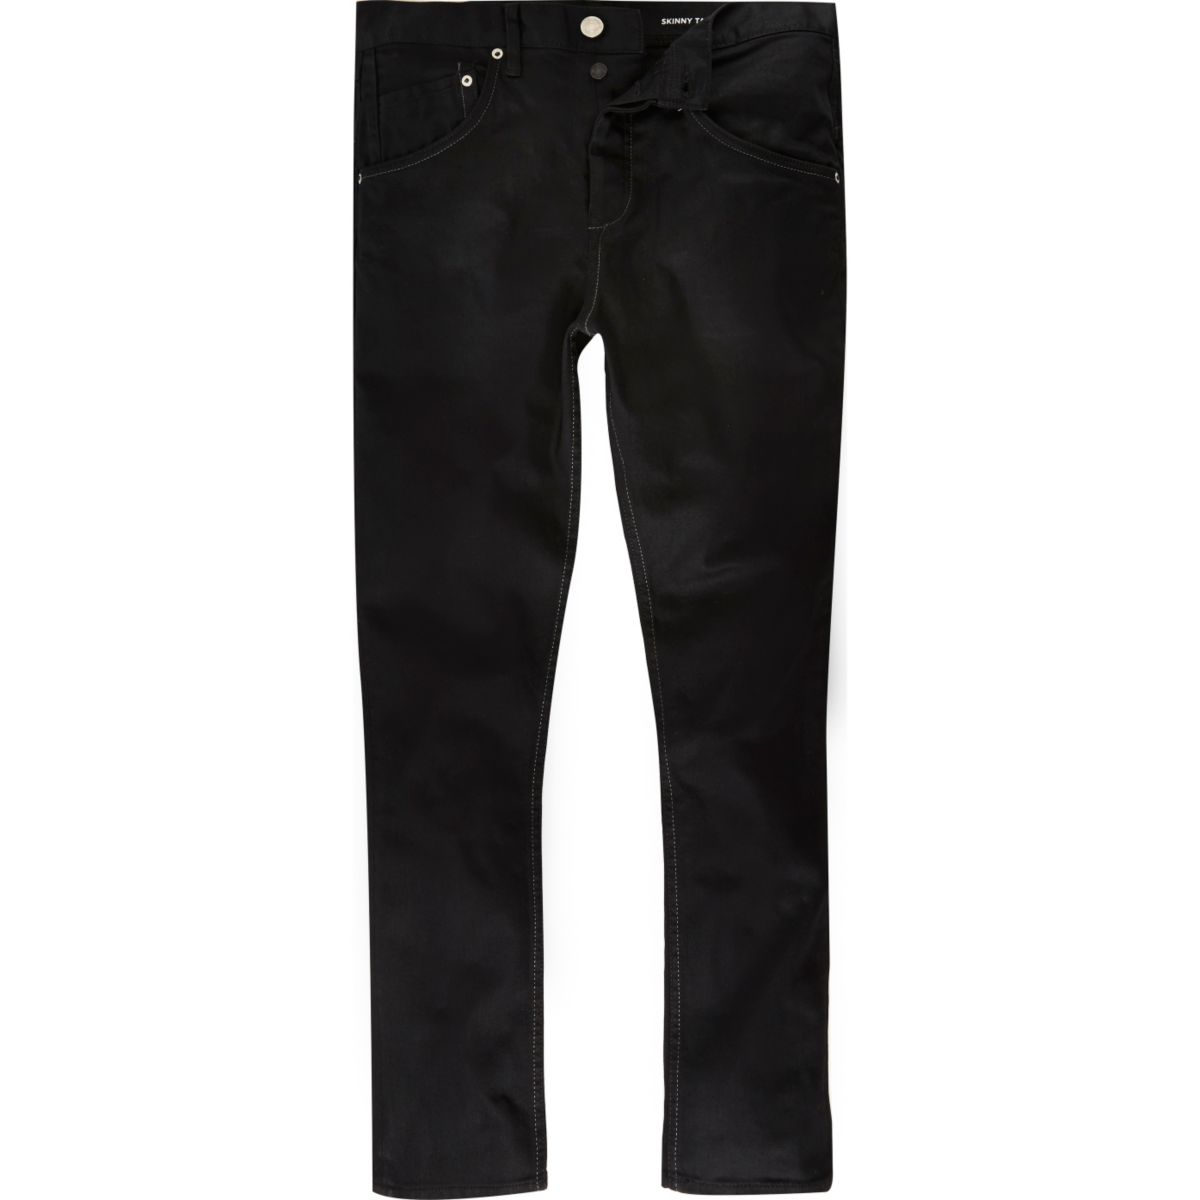 Black Chester skinny tapered jeans